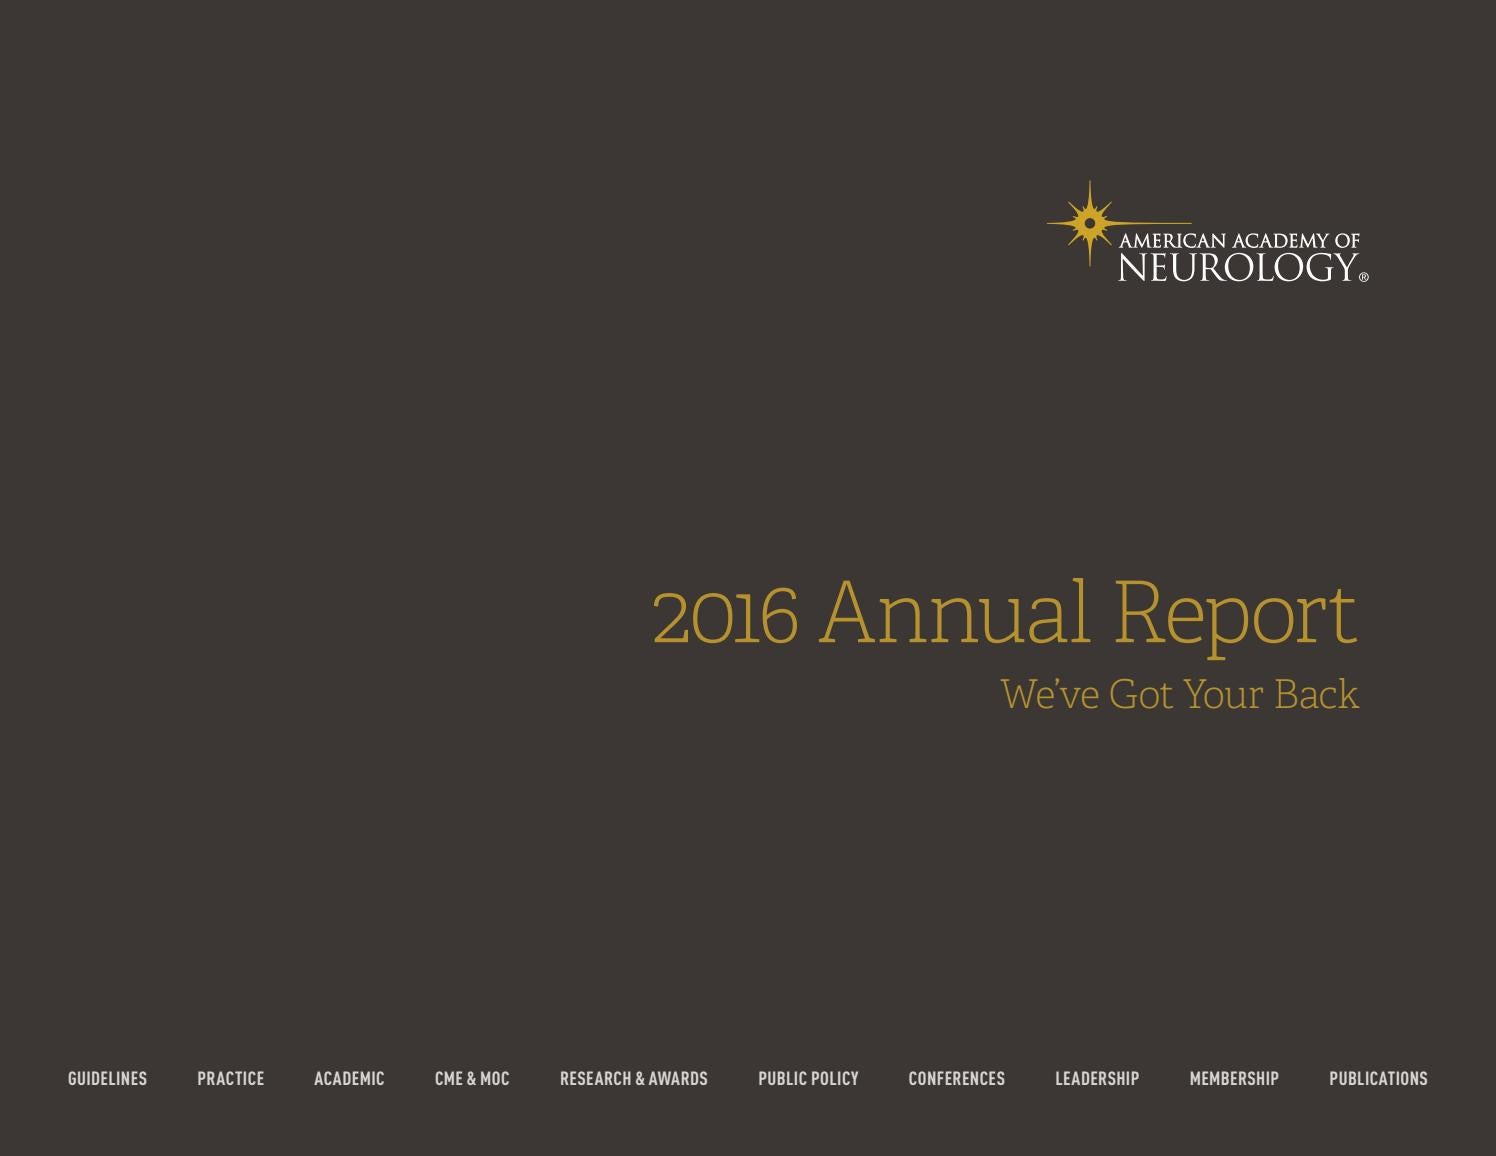 2016 AAN Annual Report by American Academy of Neurology - issuu